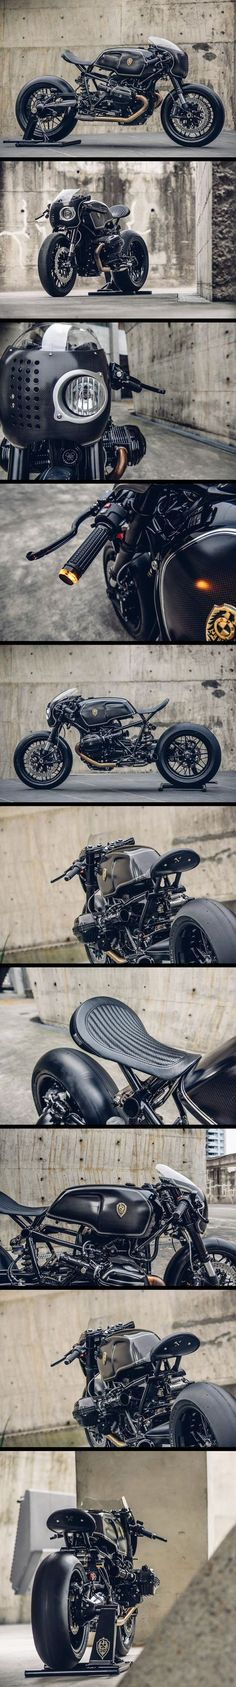 20 Best Cafe racers images in 2019 Custom motorcycles, Cars, Cafe